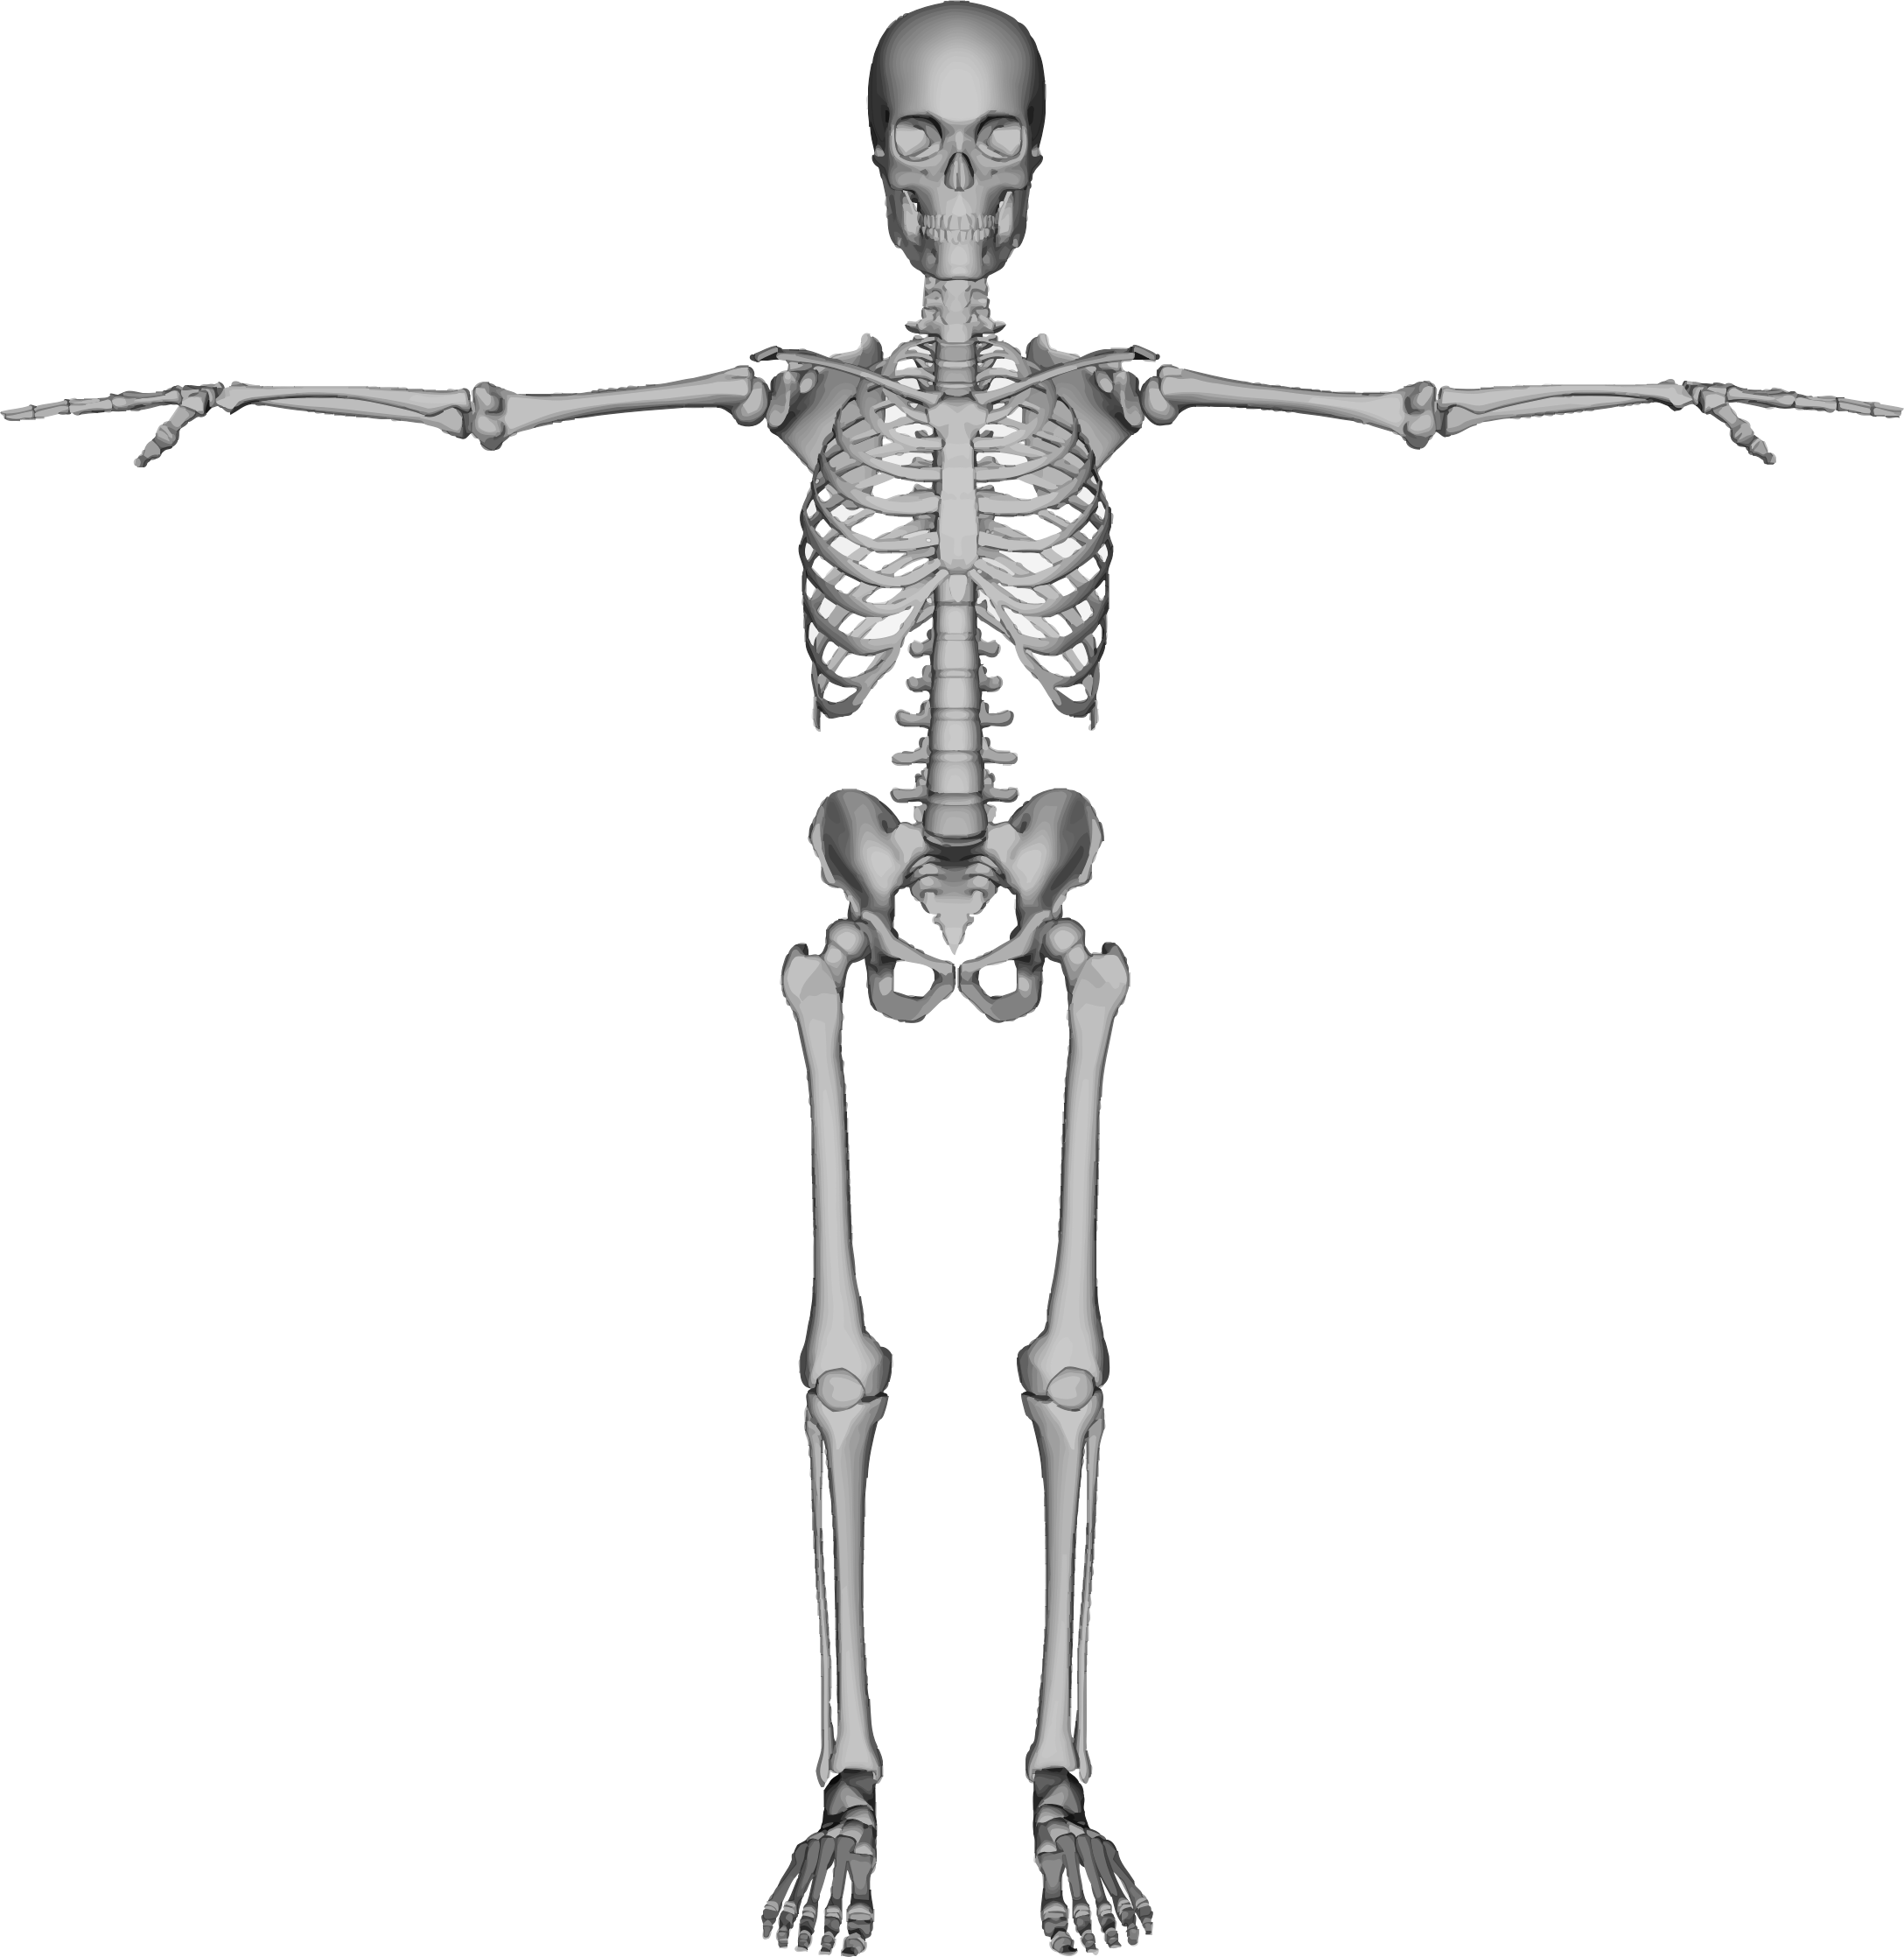 Skeleton arms png. Background transparentpng image information